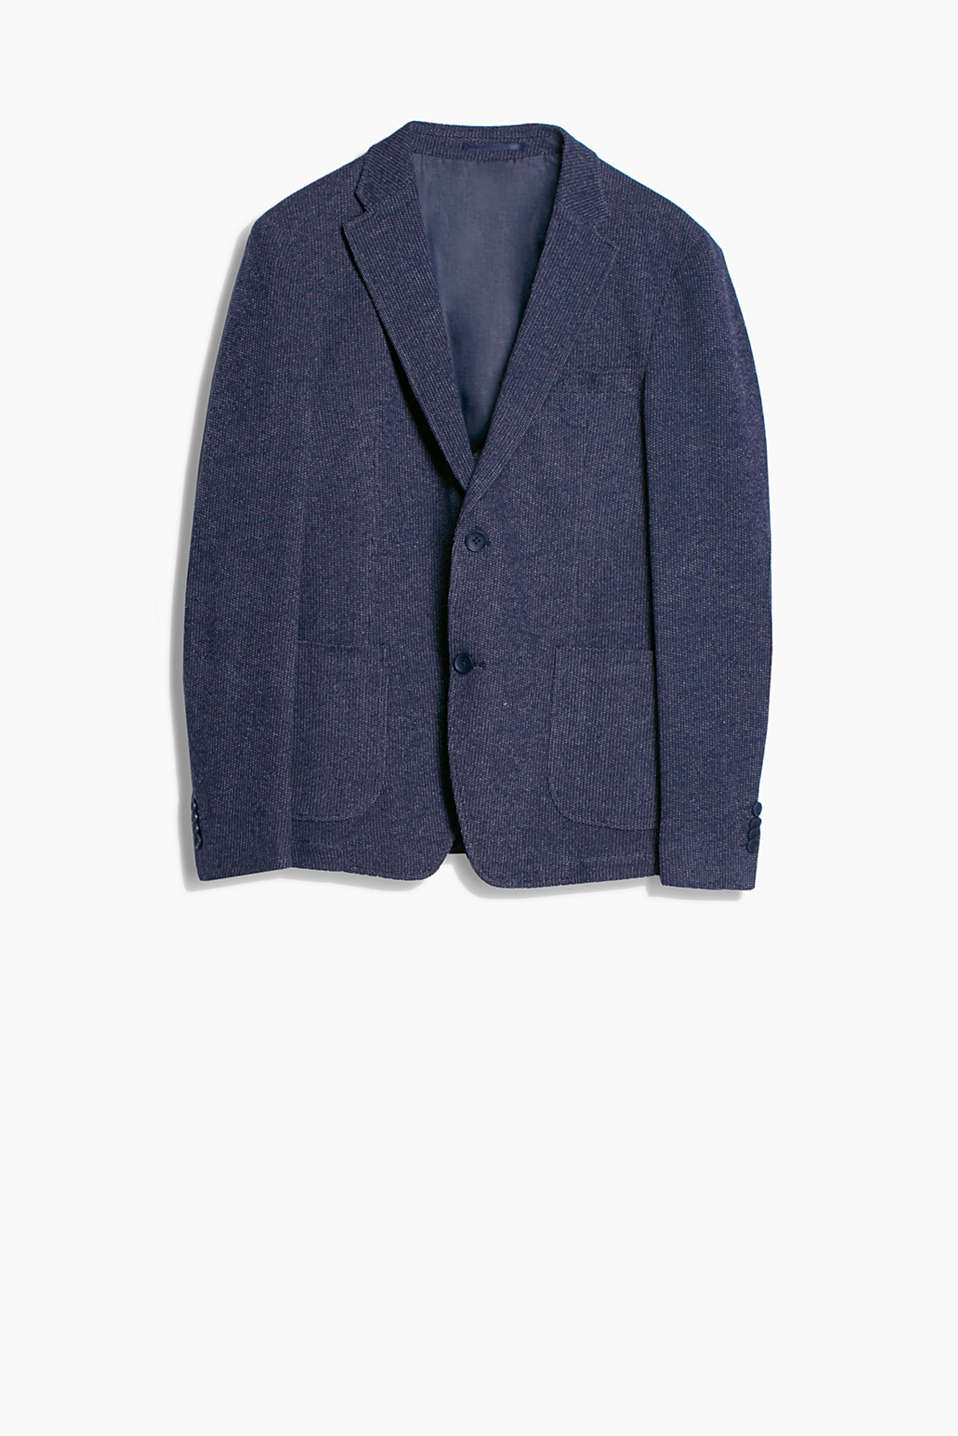 Blazer with elbow patches and a wavy knit texture